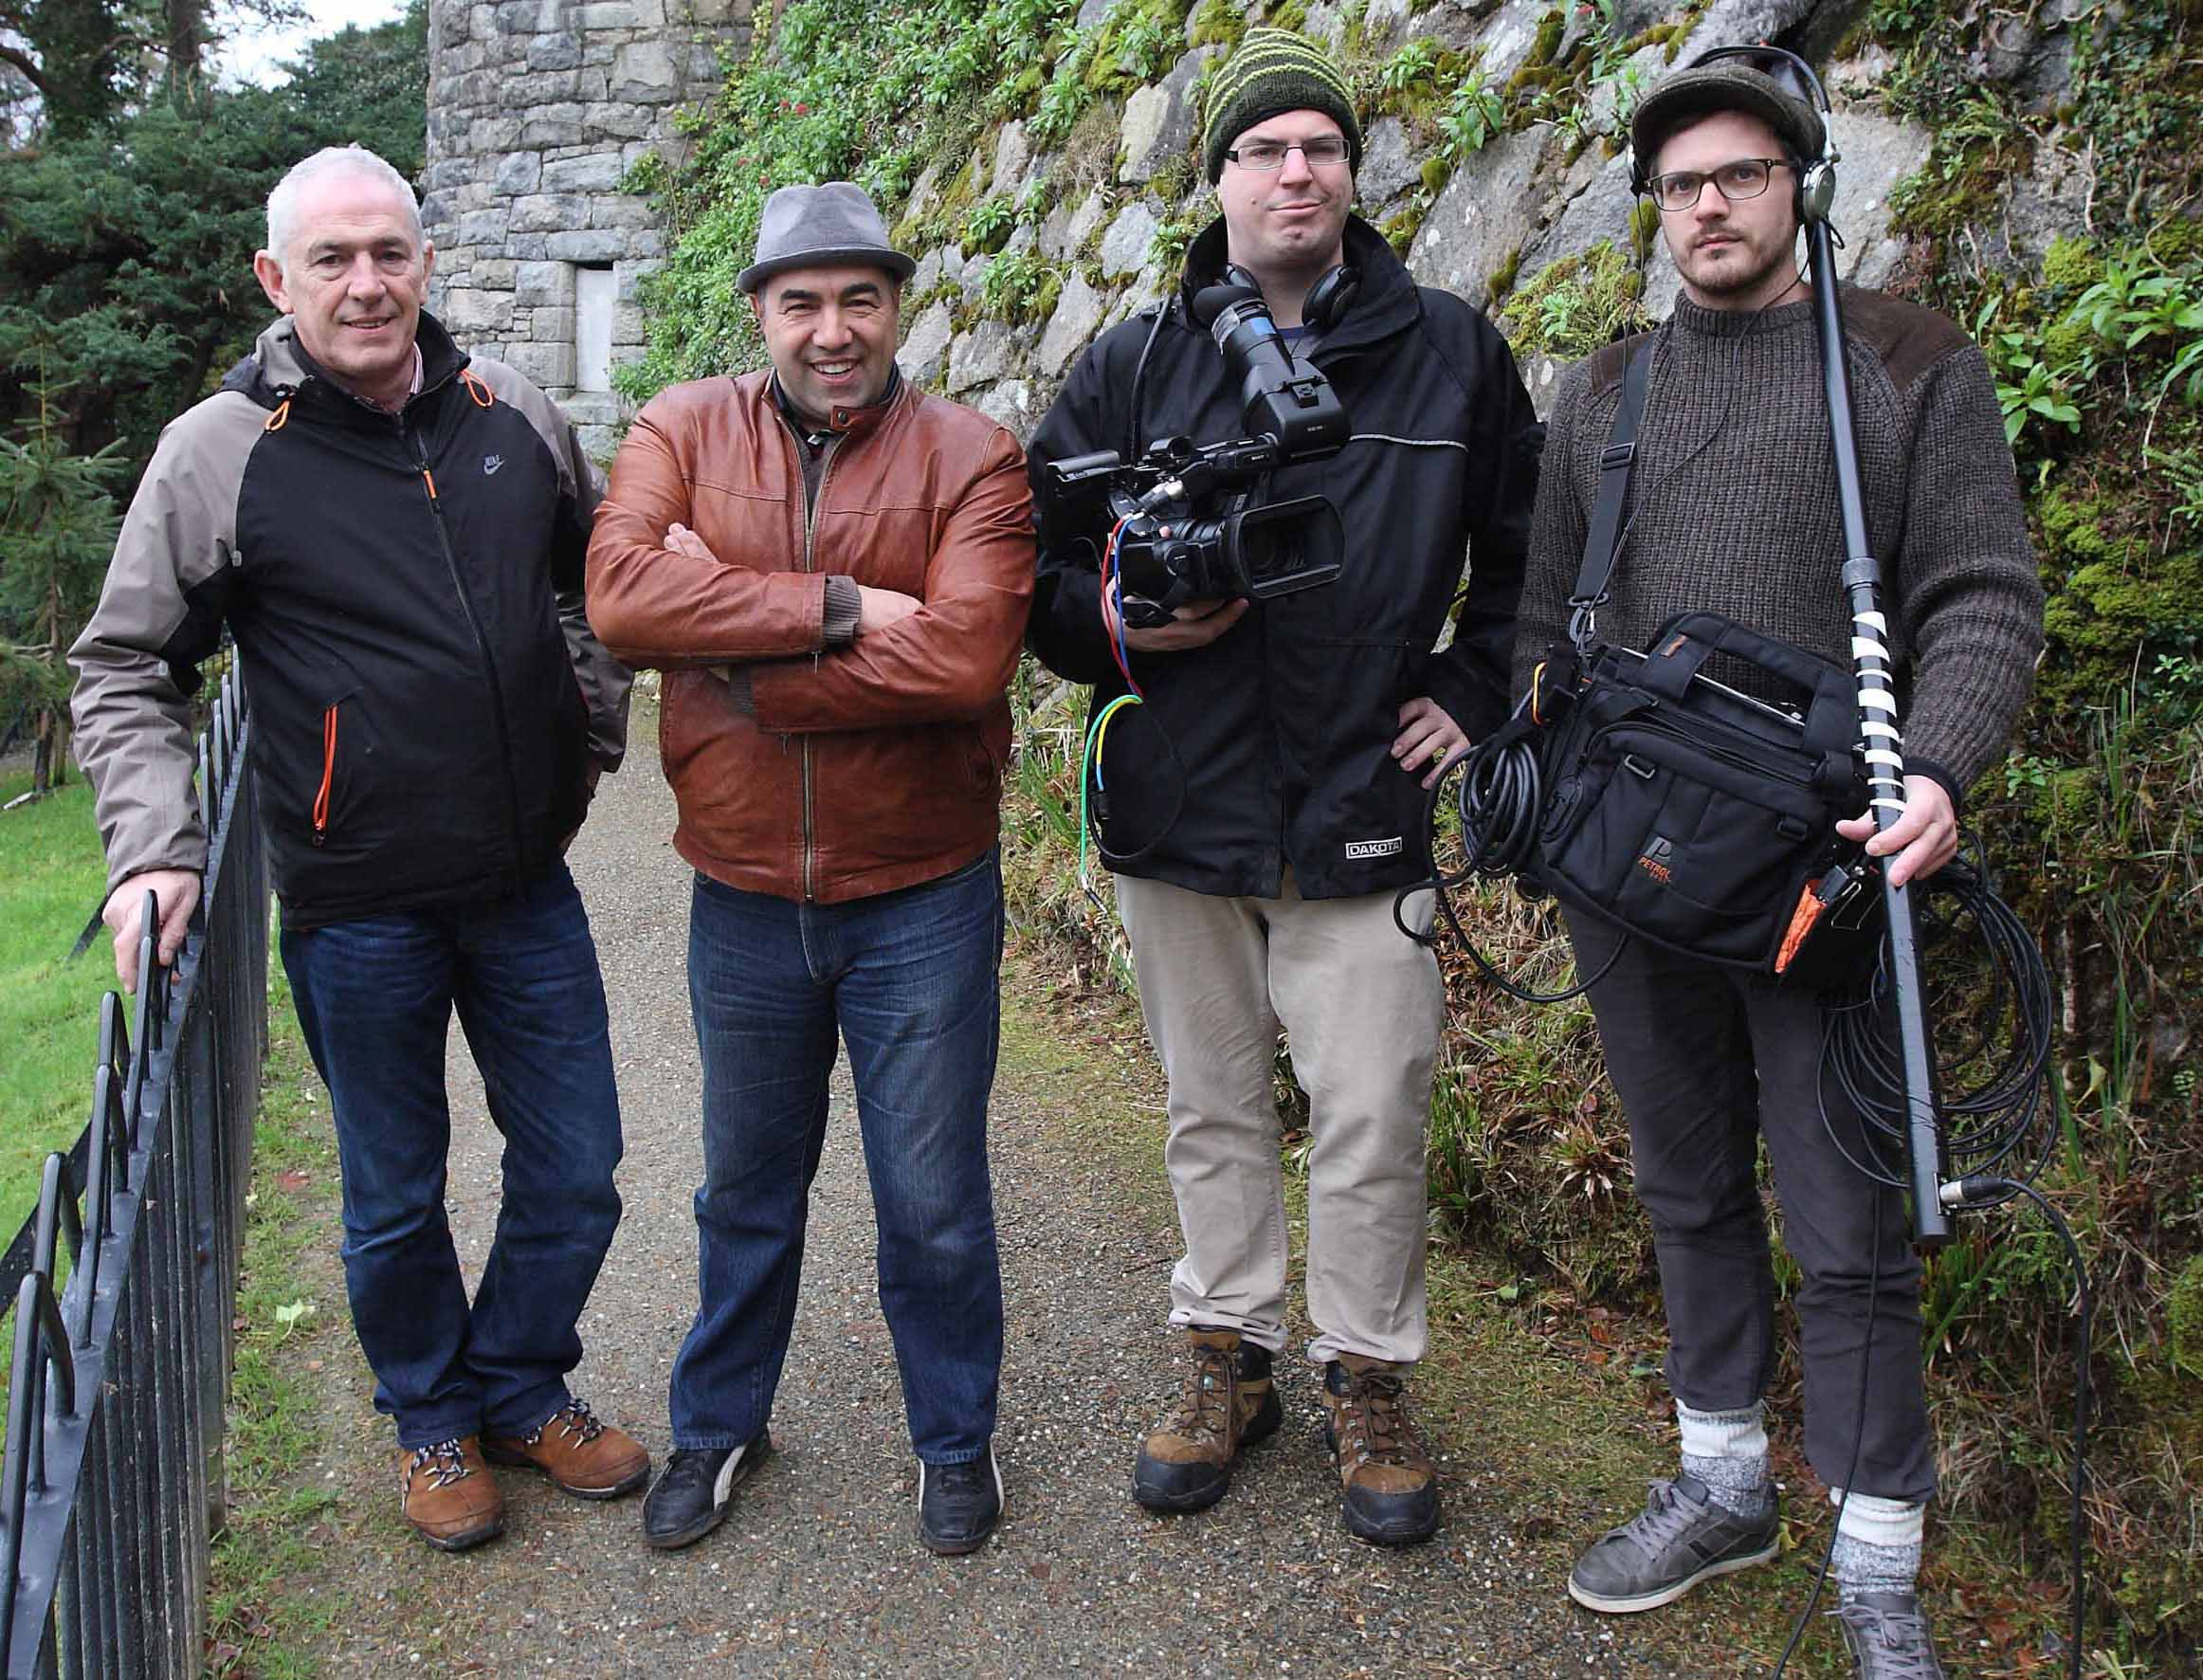 CANADIAN TV SHOW 'THE TRAVEL GUY' FILMS IN IRELAND